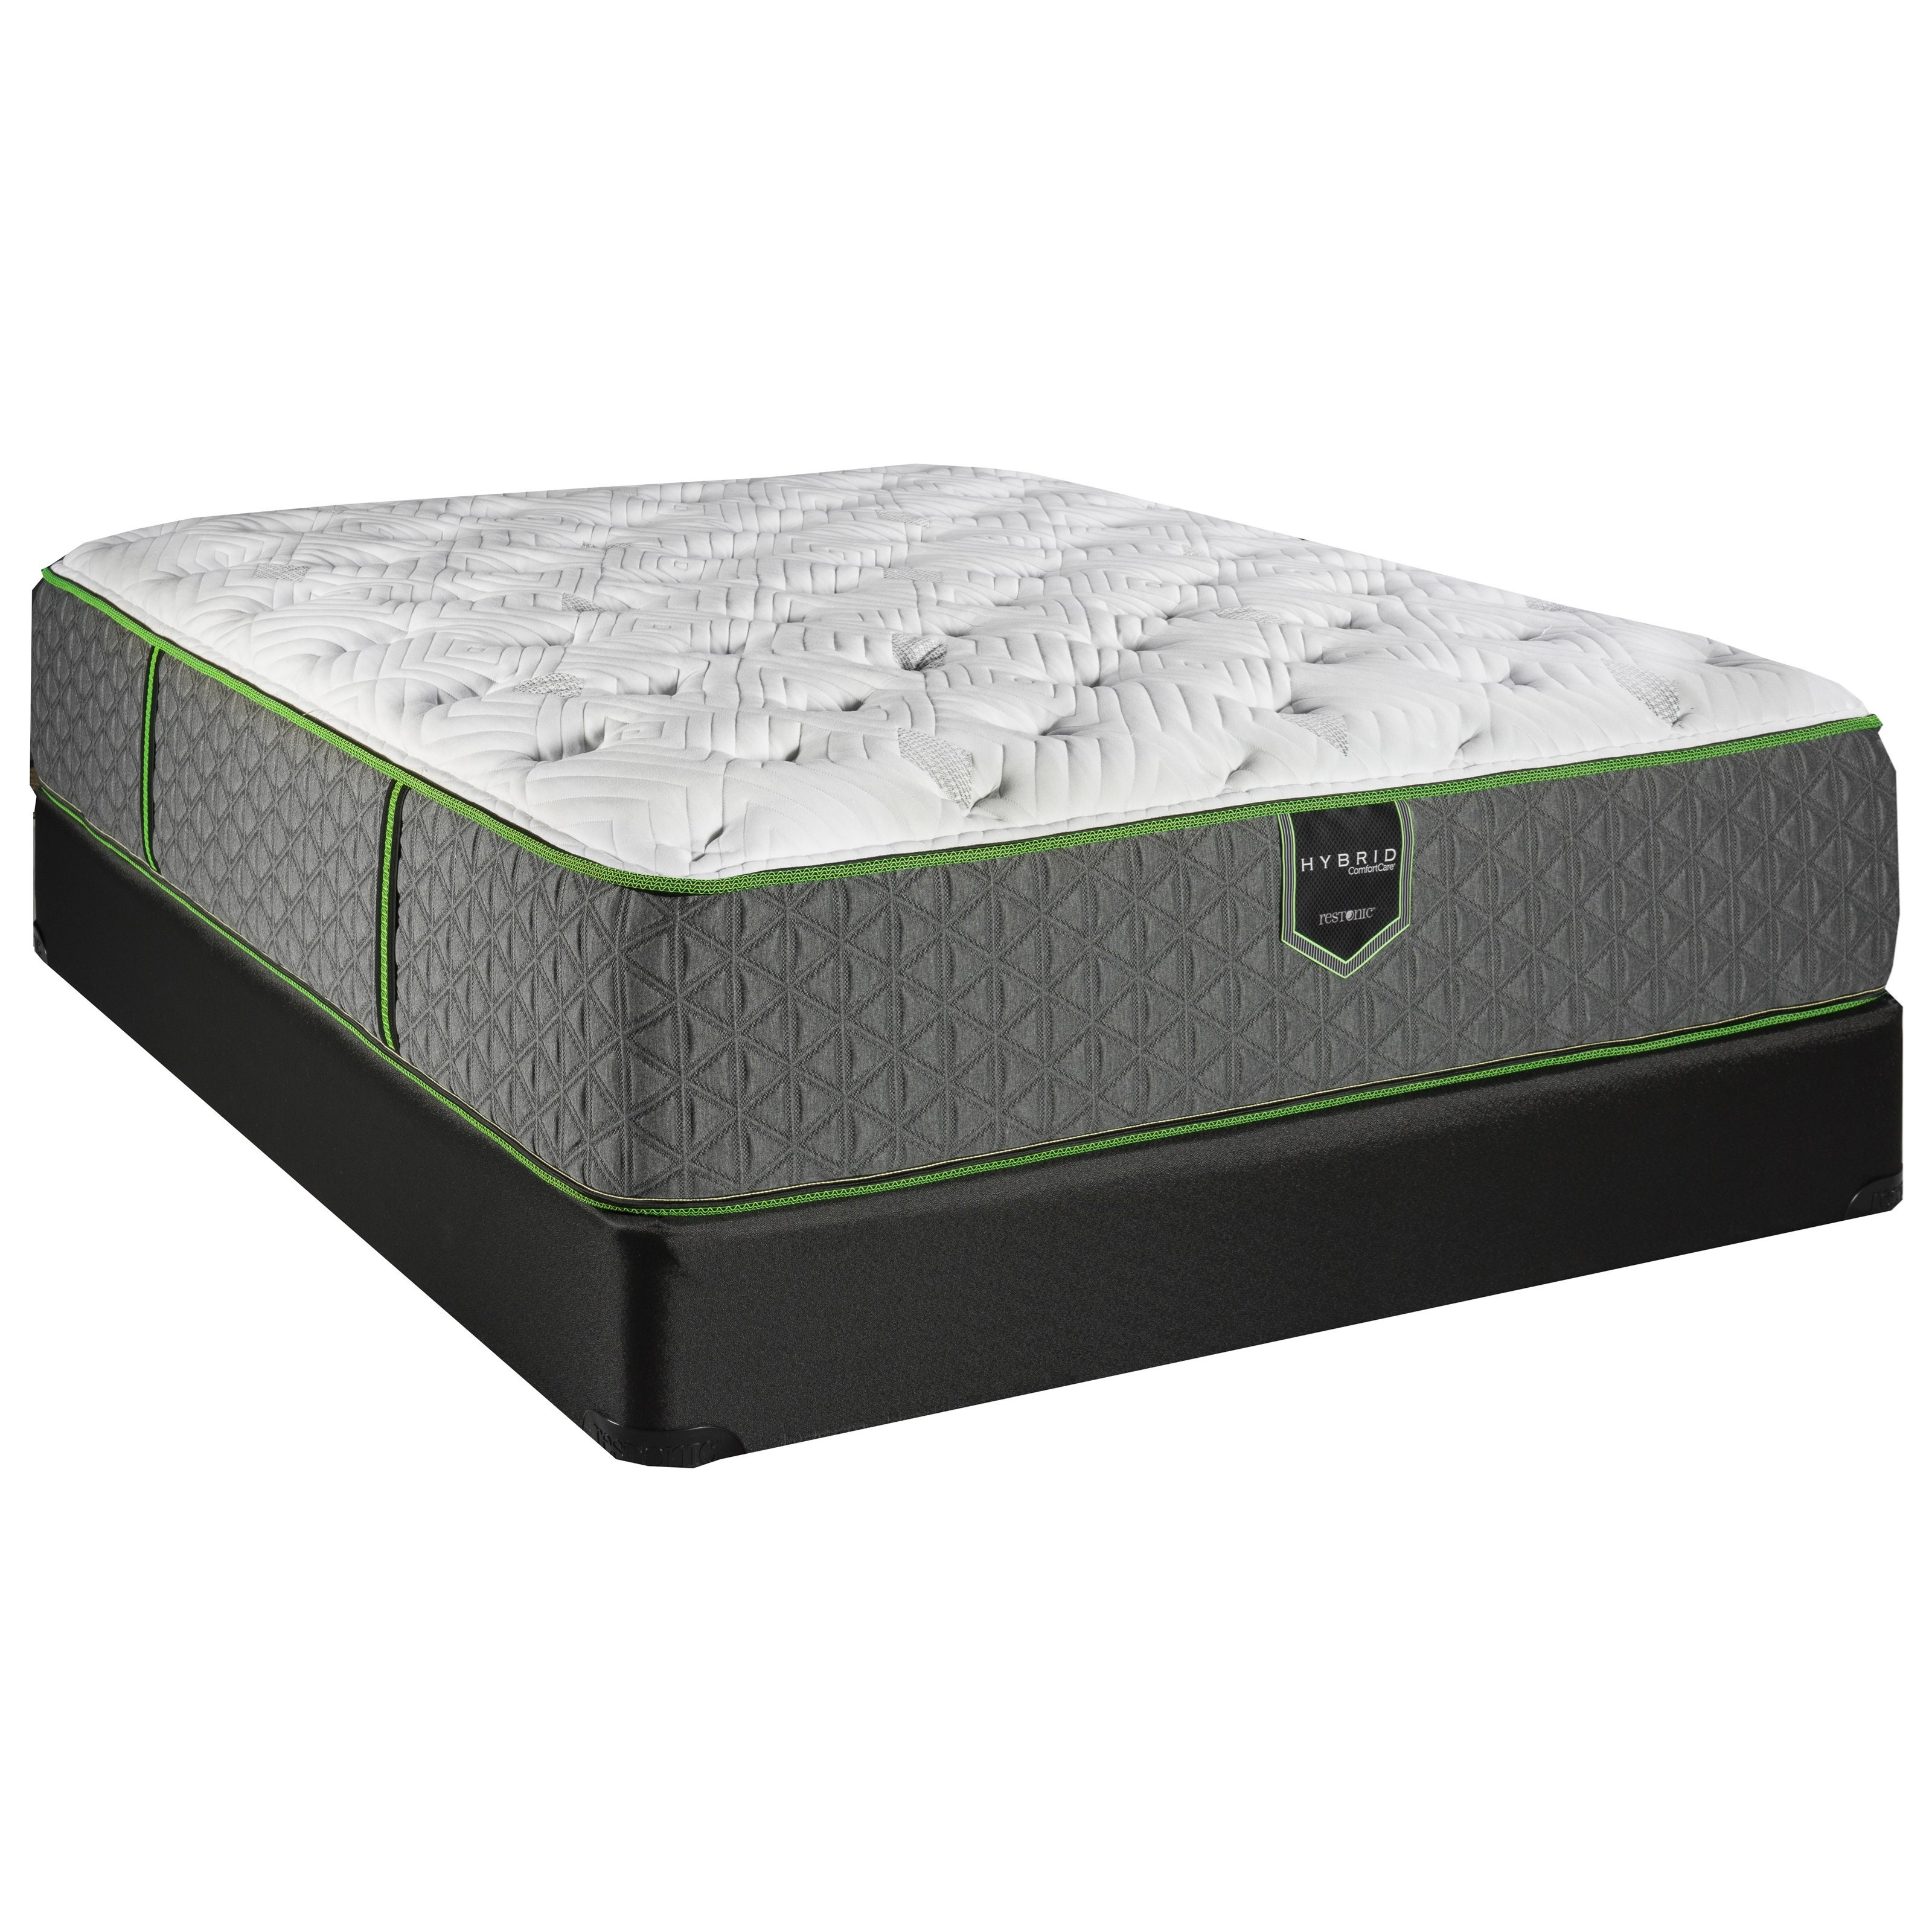 Full Luxury Firm Hybrid Mattress Set